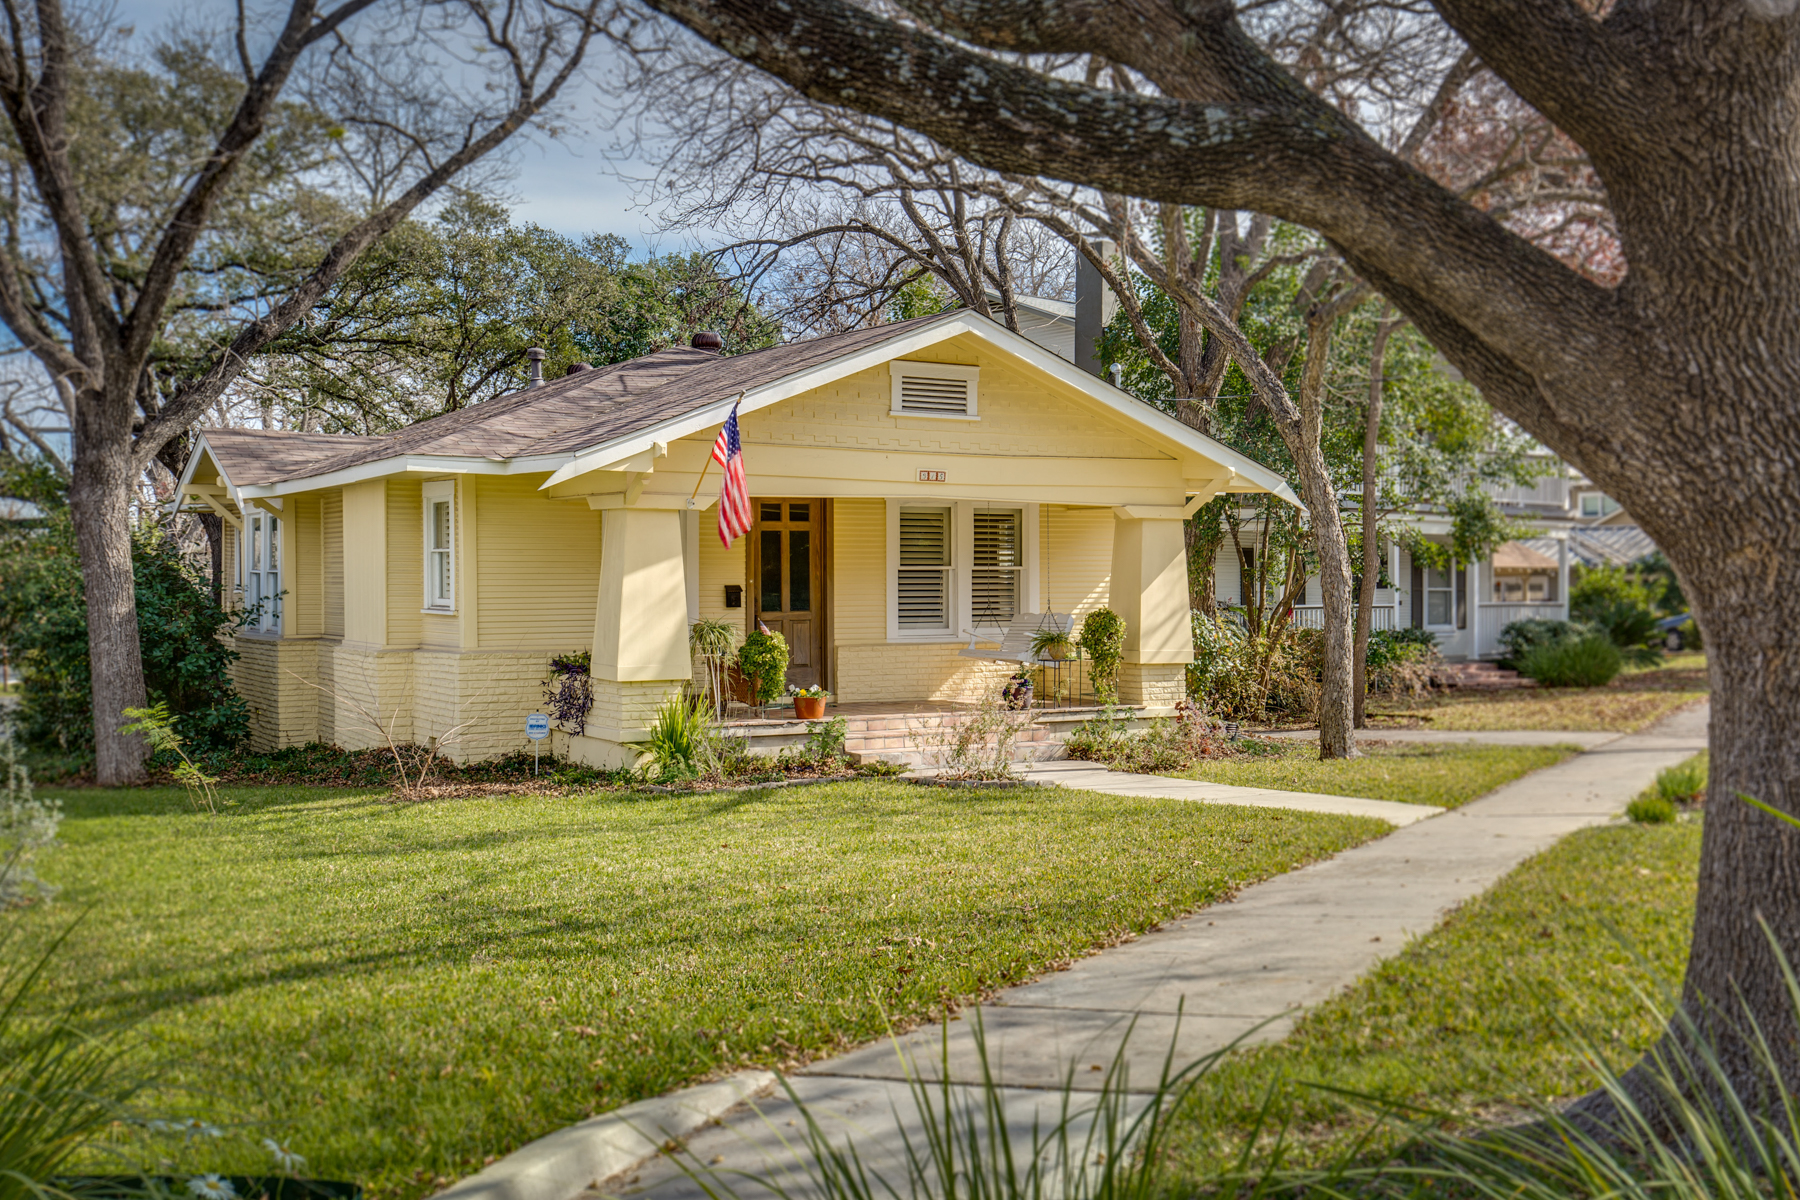 Single Family Home for Sale at Charming Home in Alamo Heights 315 Joliet Ave San Antonio, Texas 78209 United States